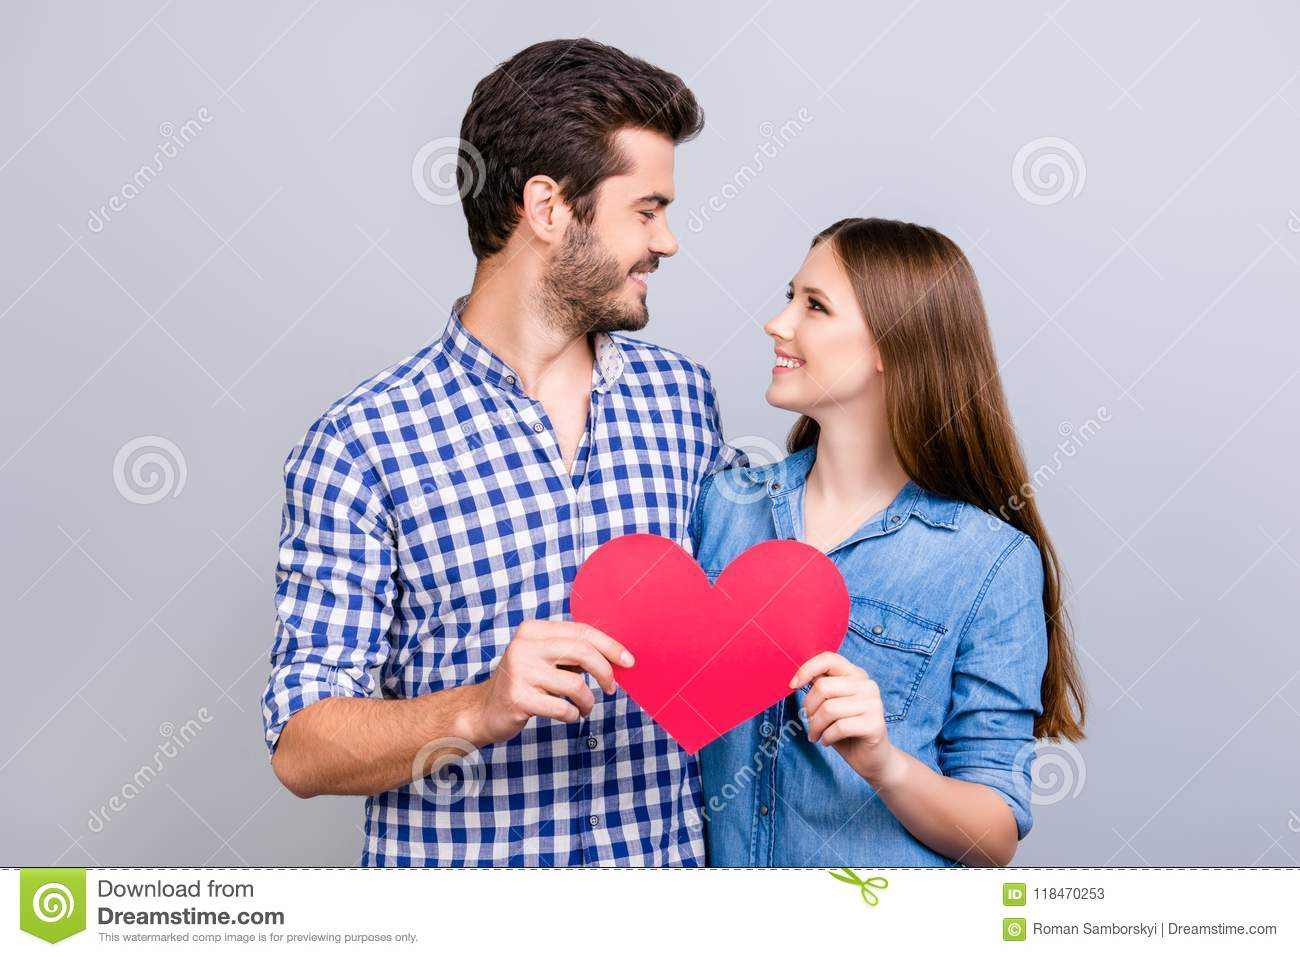 Love story. Trust and feelings, emotions and joy. Happy young lovely couple in love is posing, wearing casual shirts, holding big